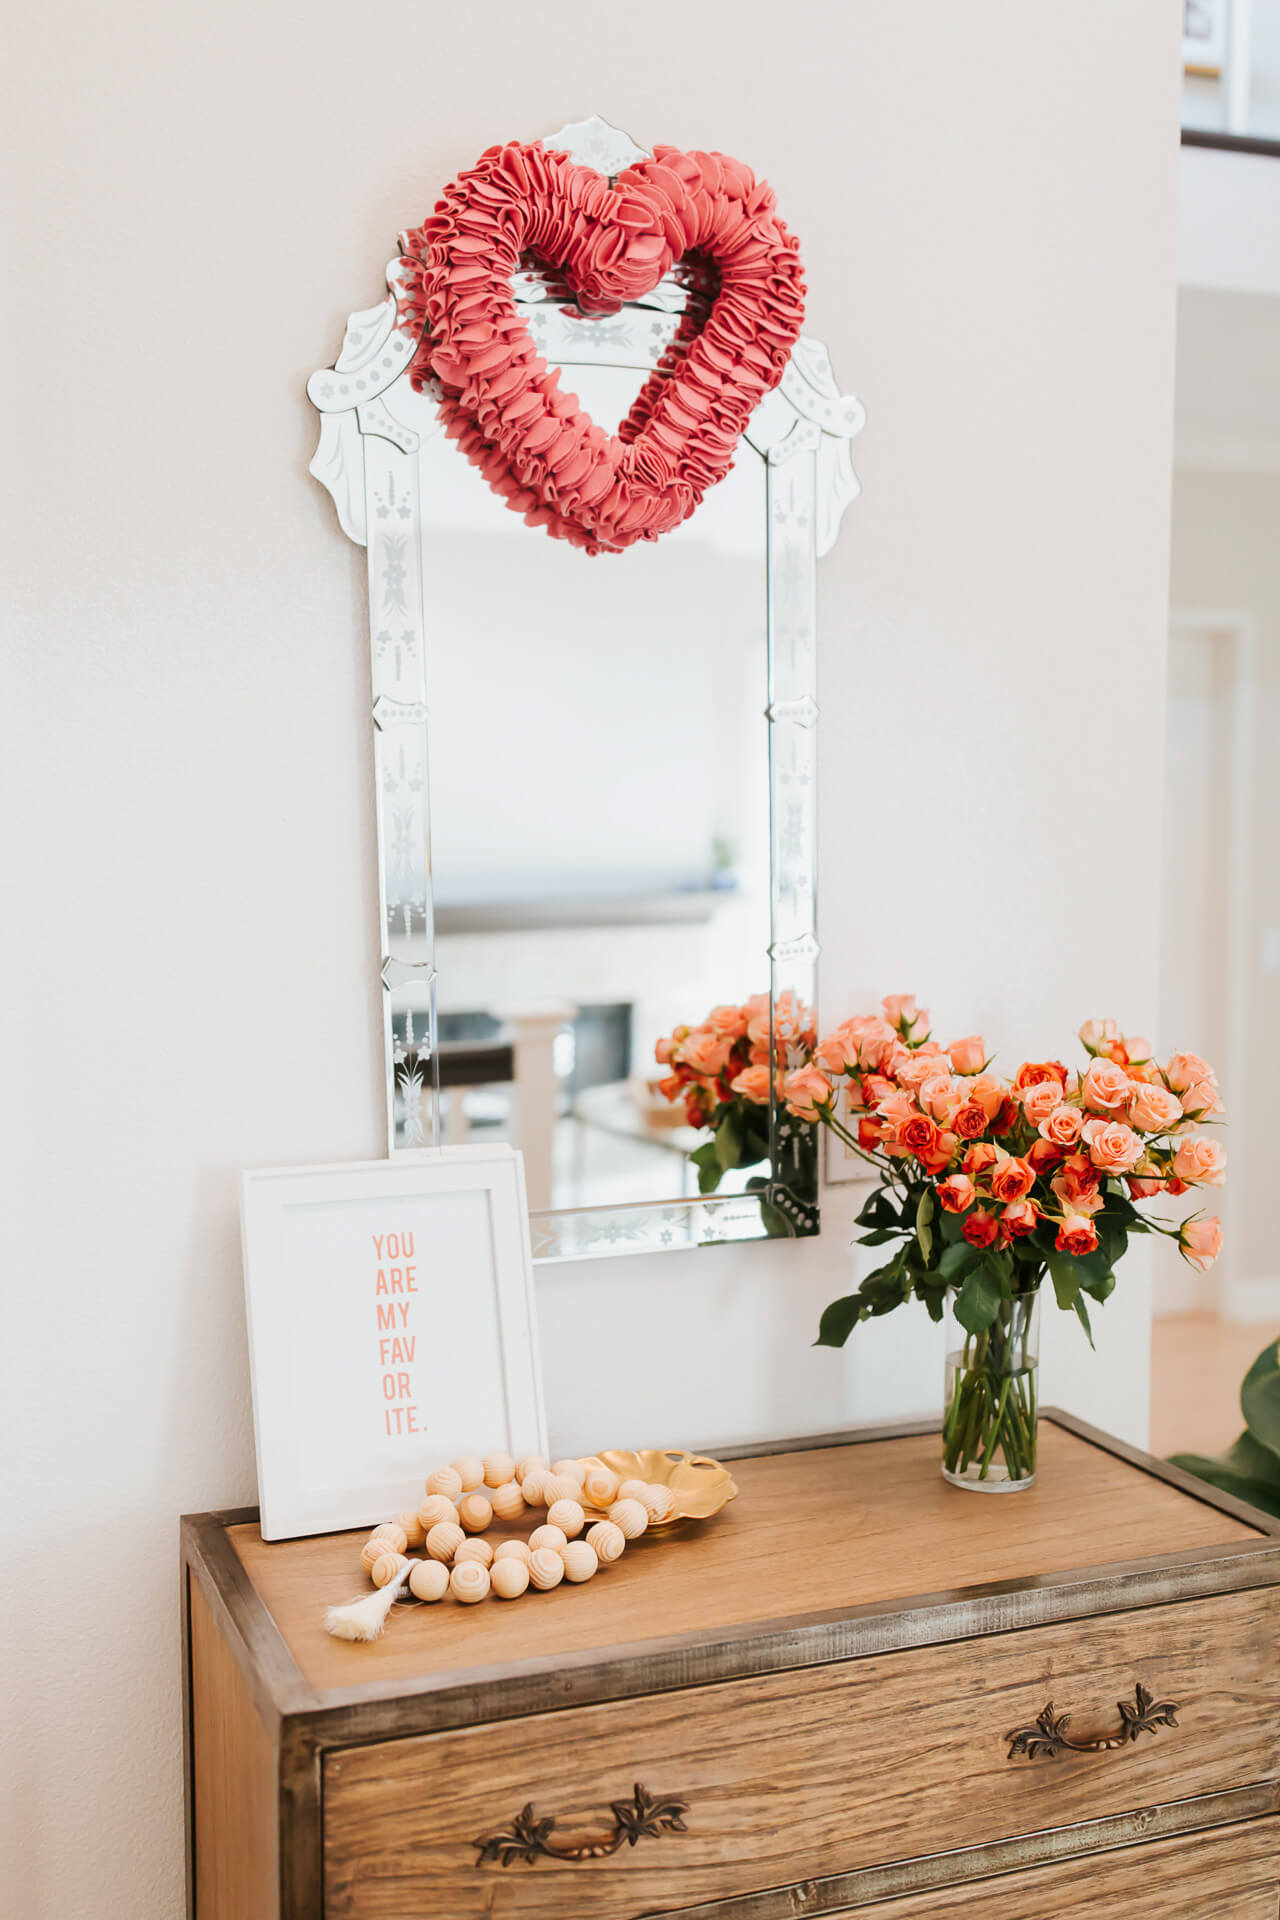 decorating the entryway for Valentine's Day